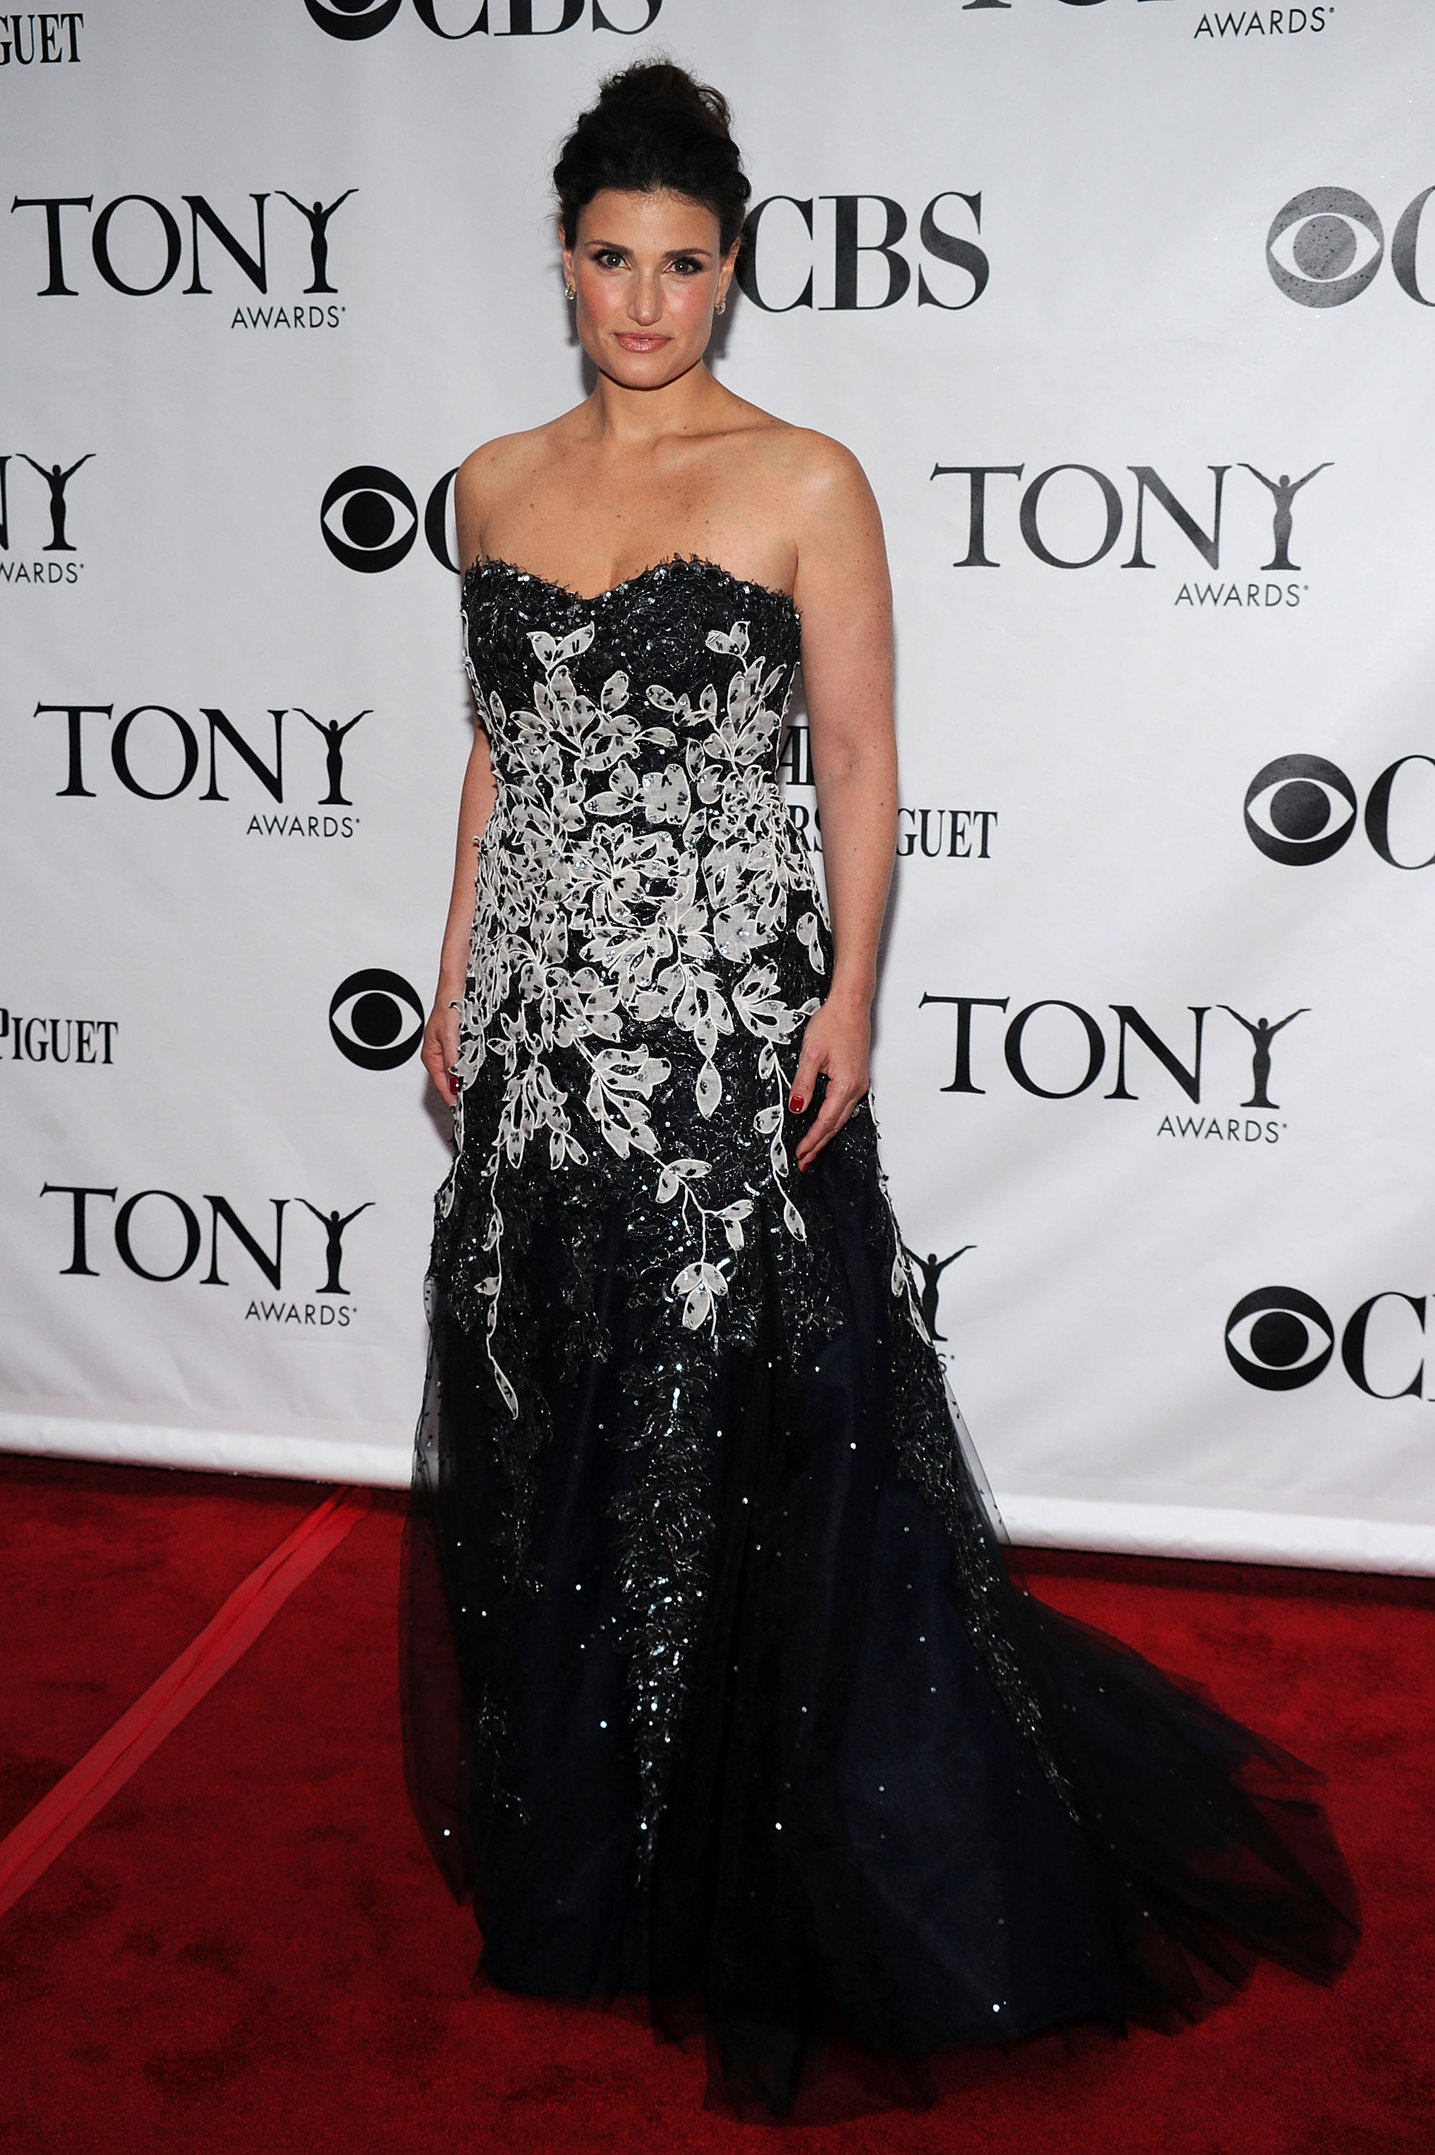 Idina Menzel 64th Annual Tony Awards June 13, 2010